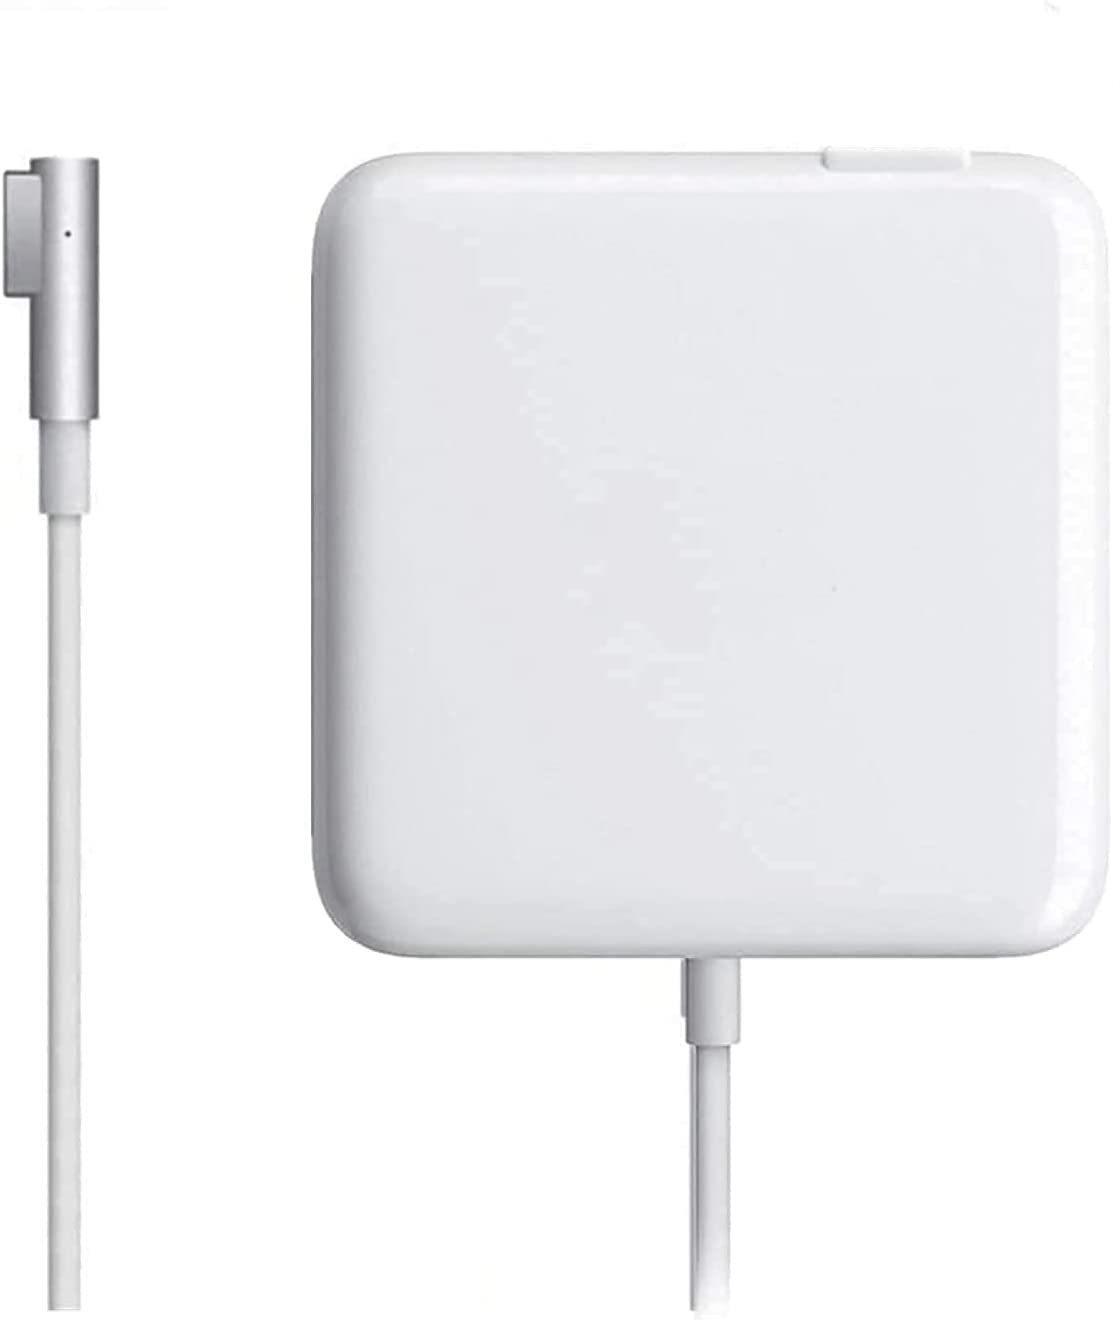 Compatible with MacBook Pro Charger, 60W Power Adapter, L-Shaped Connector Charger for Mac Book and 13-inch (Before mid-2012 Model)